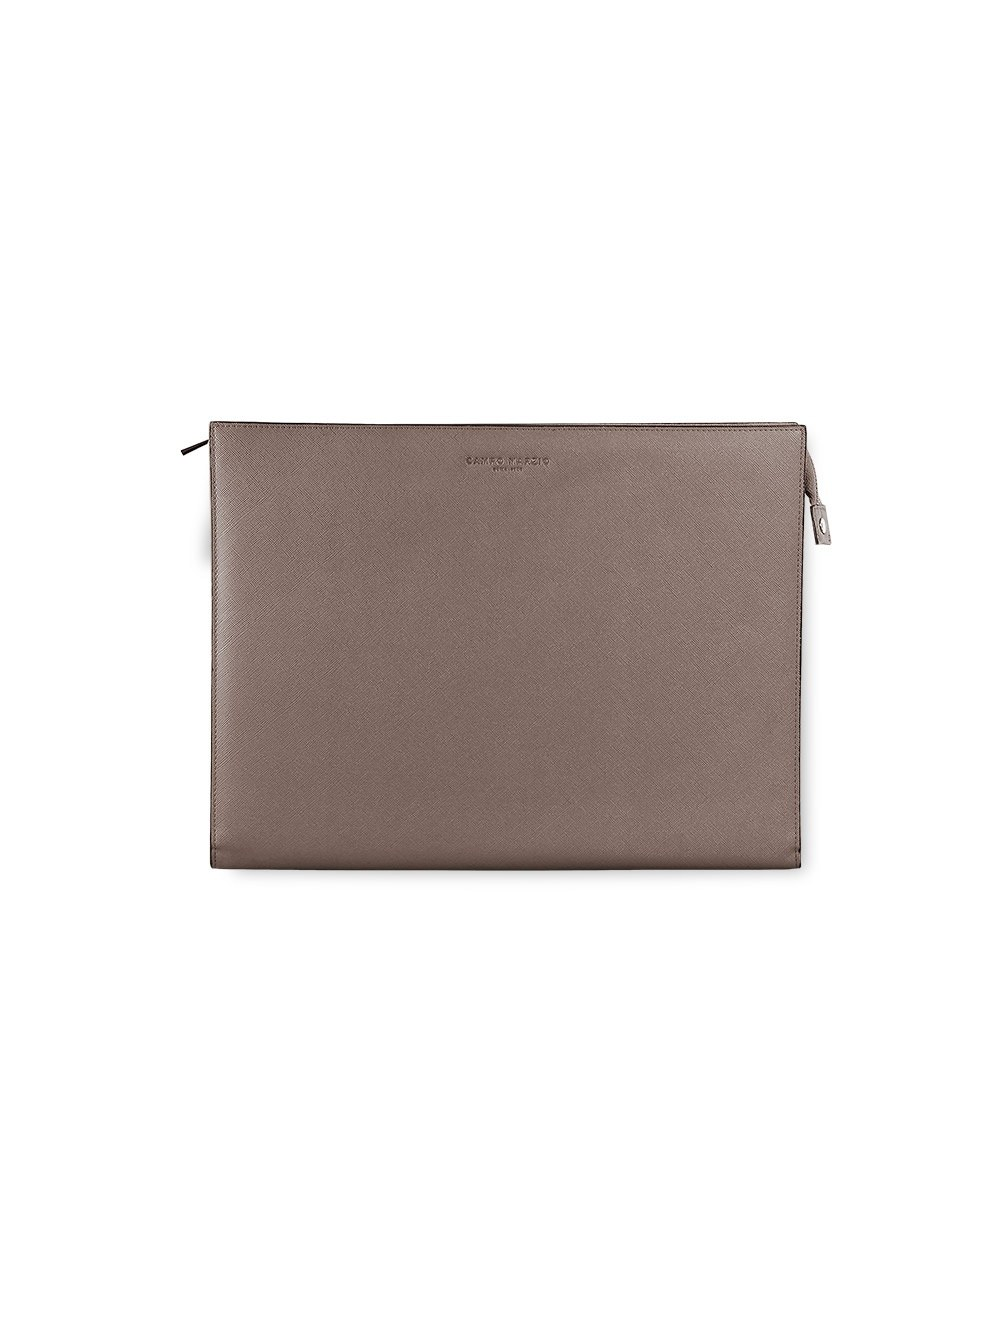 Medium Document Holder - Grey